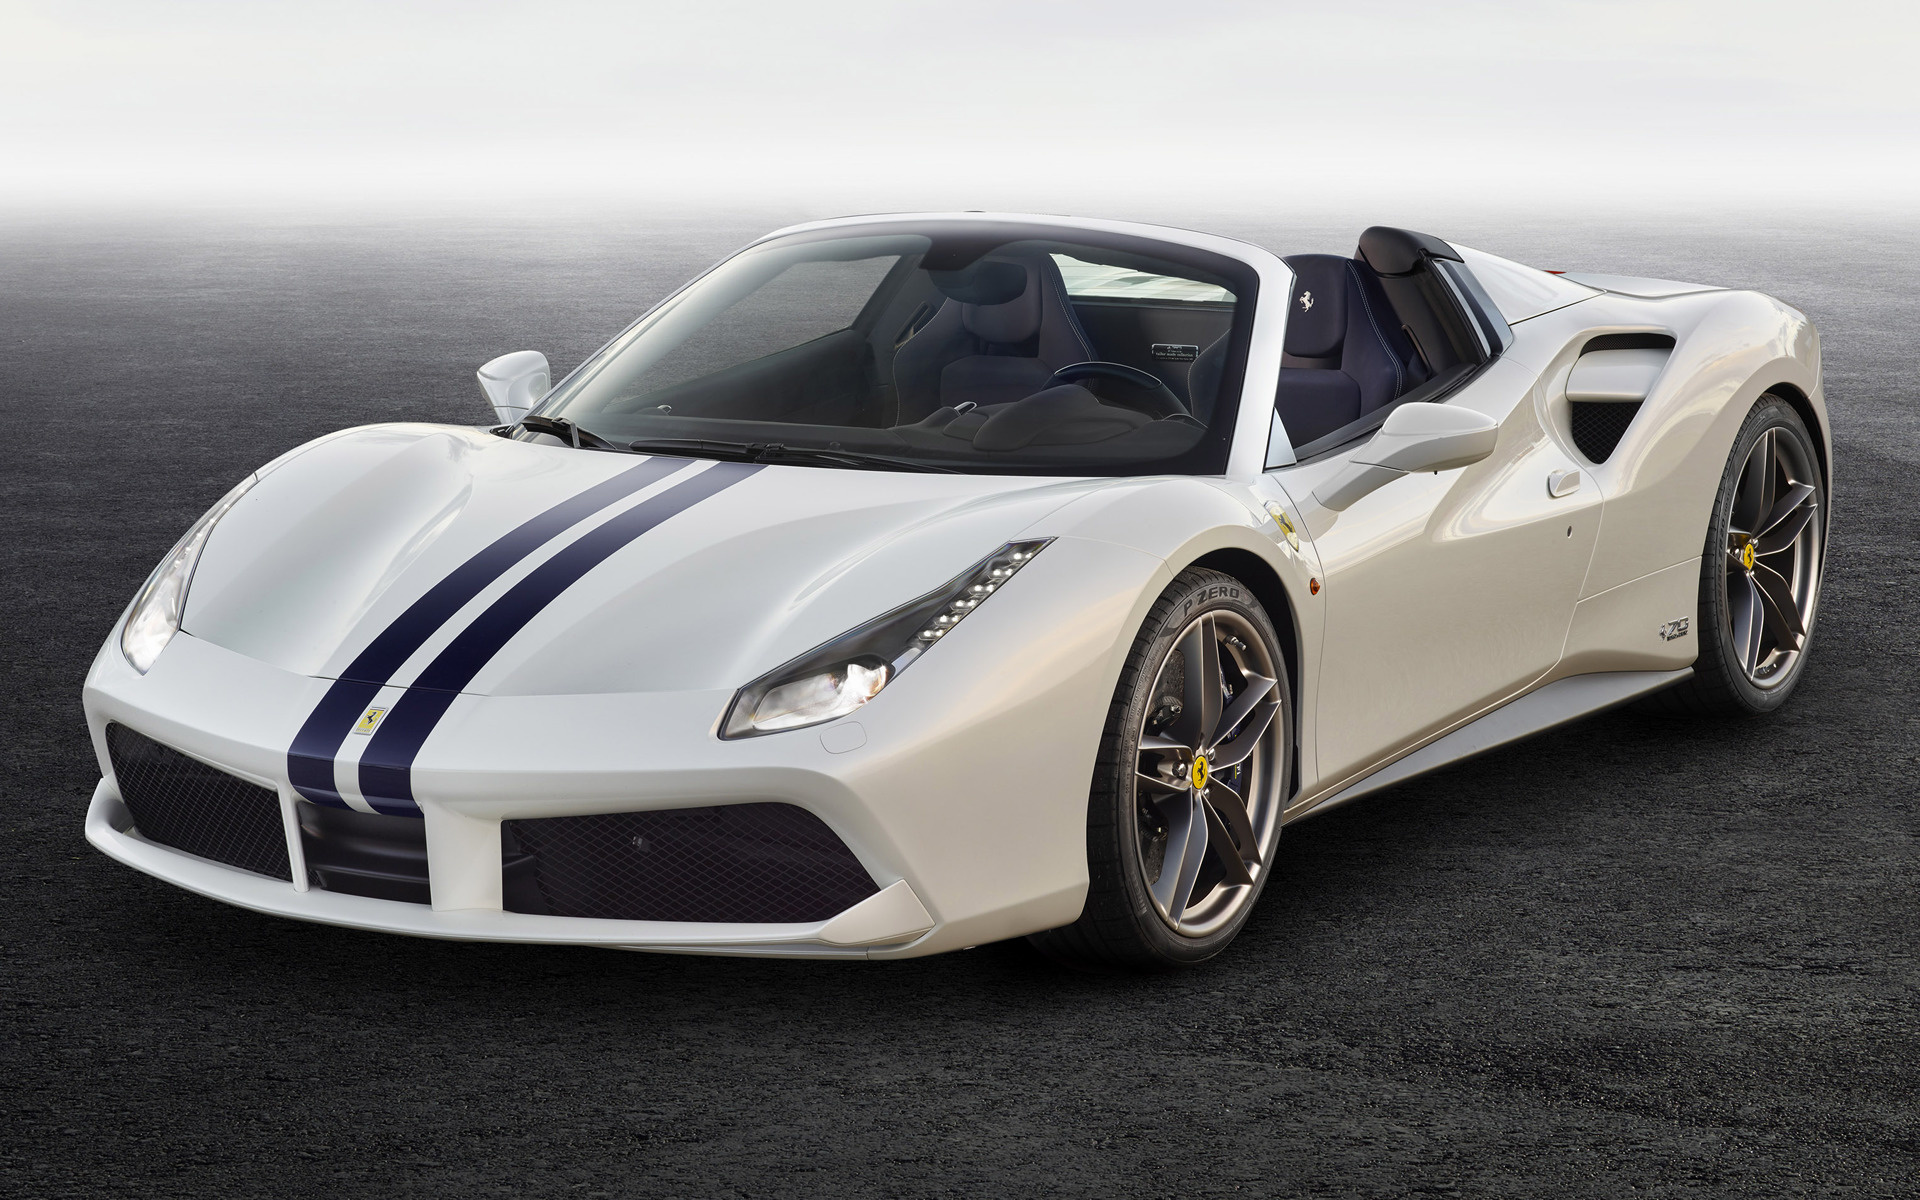 Ferrari 488 Spider The White Spider (2017) Wallpapers and ...